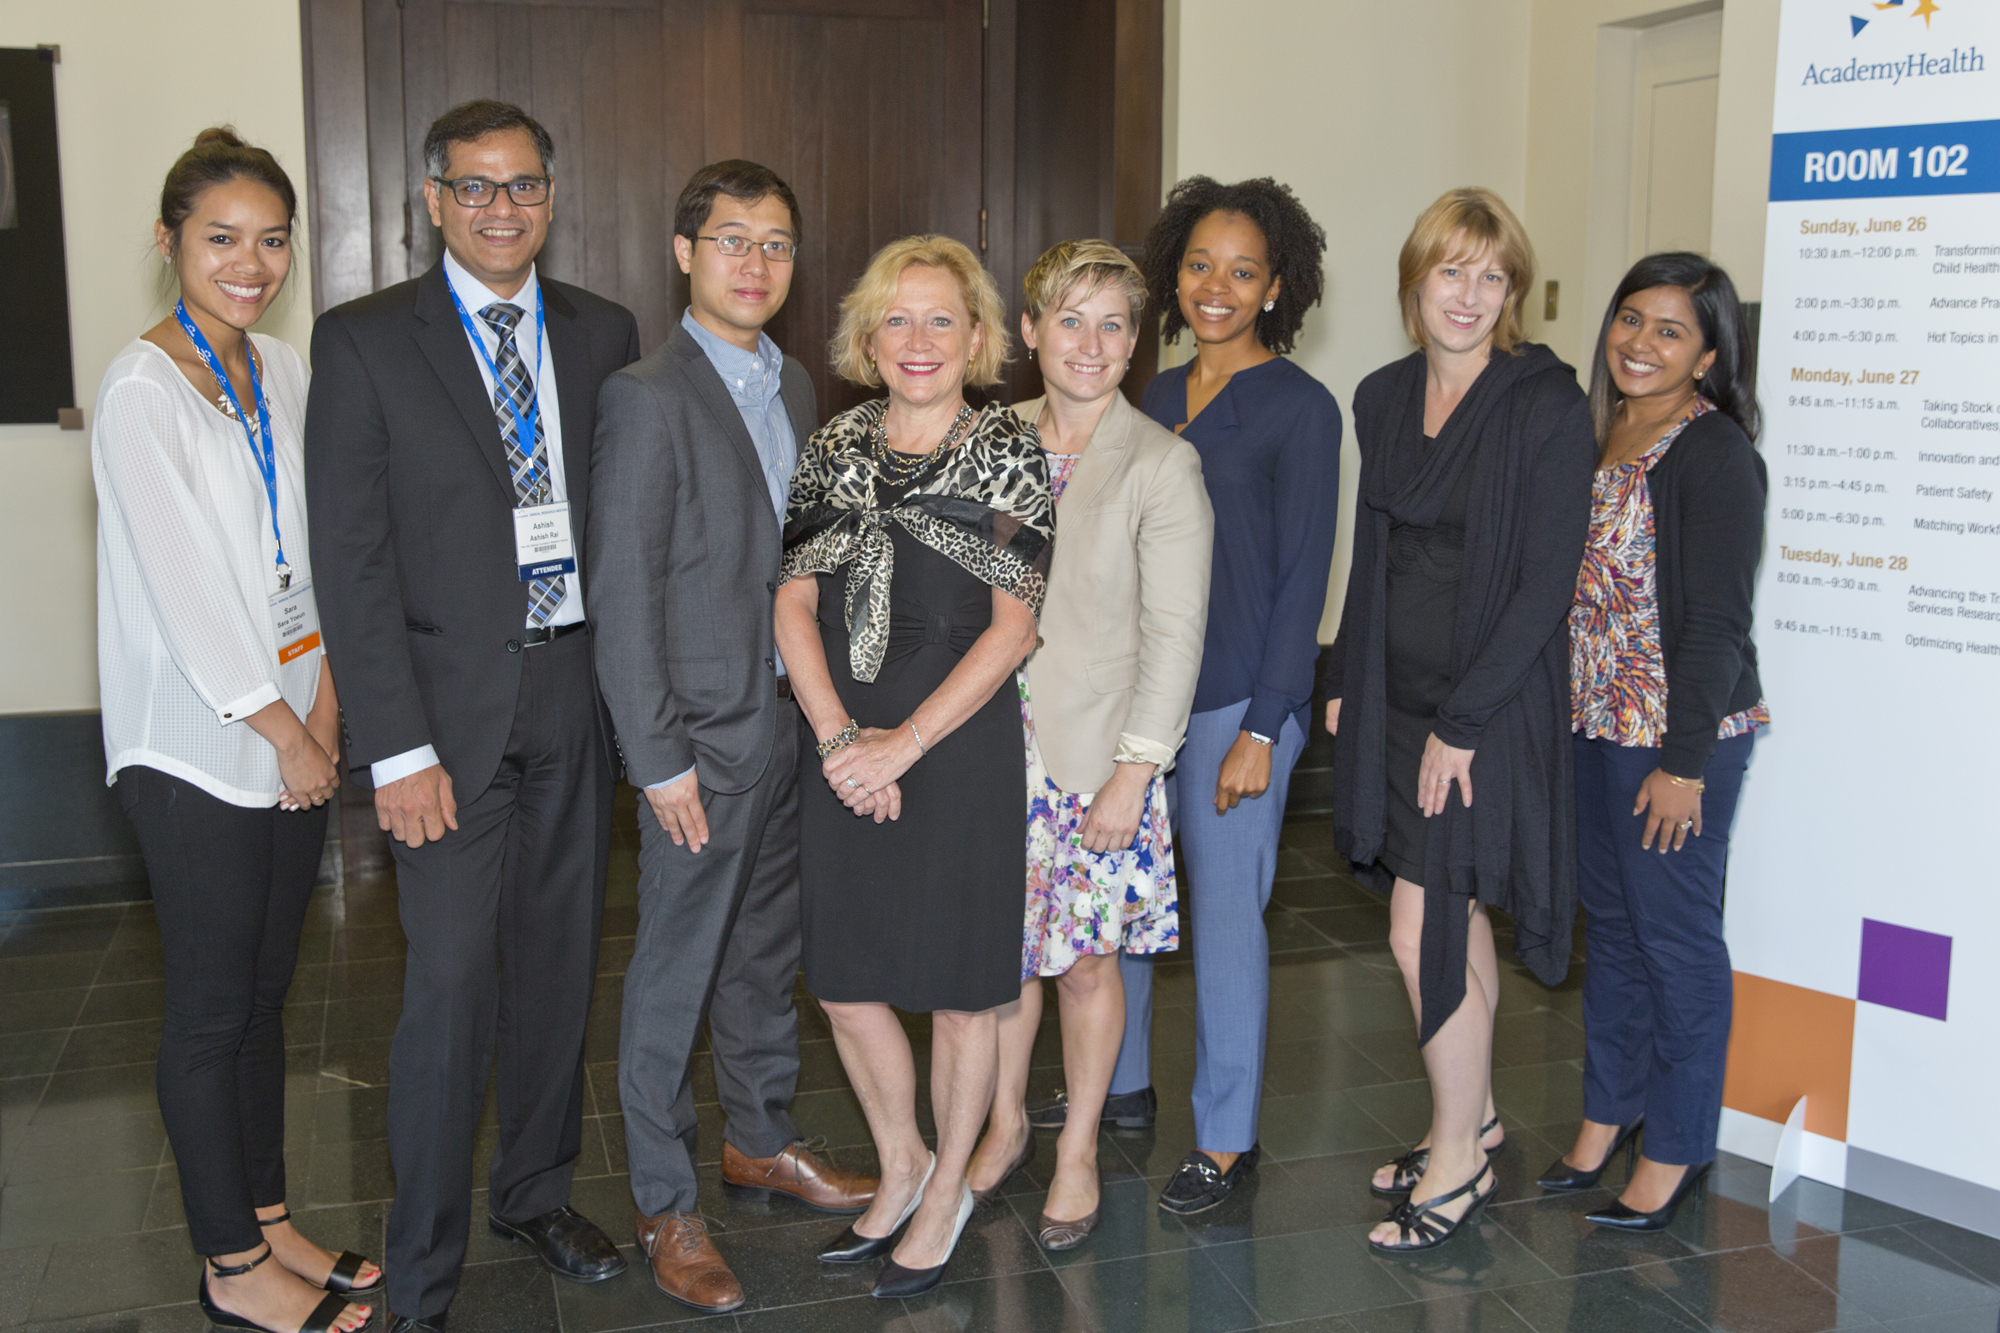 2015 dssf fellows group photo with academyhealth staff at the annual research meeting